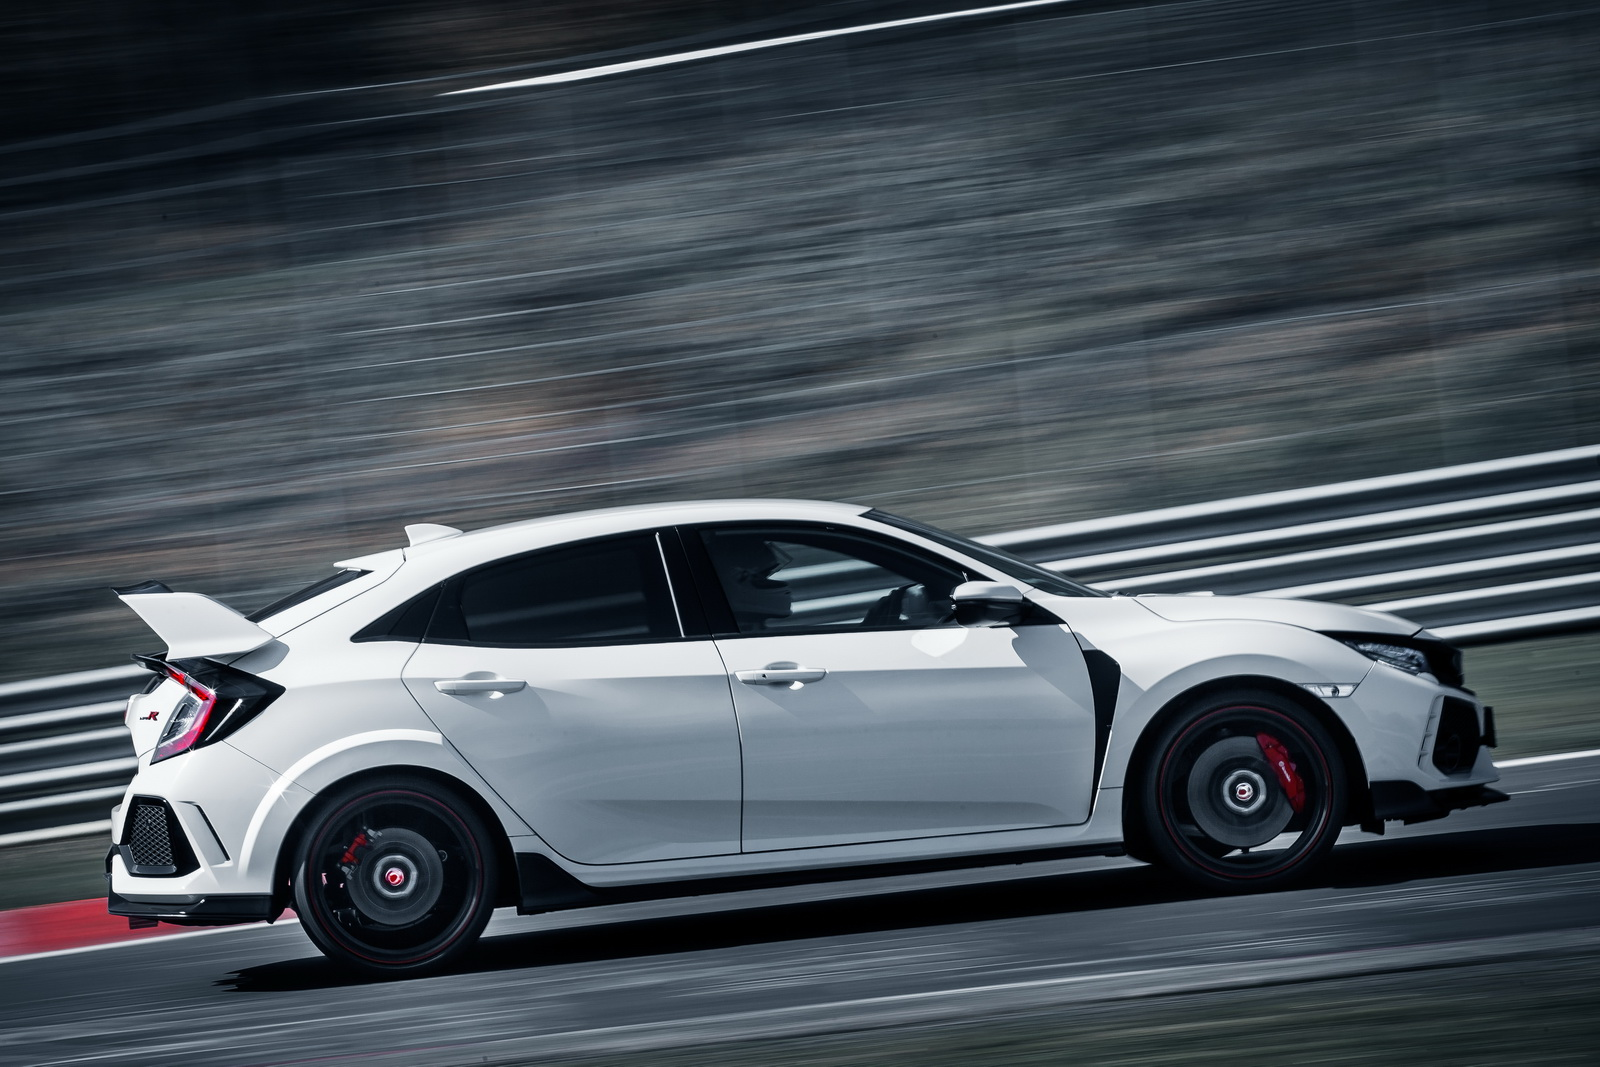 Honda Civic Type R MY 2017 - Record al Nurburgring